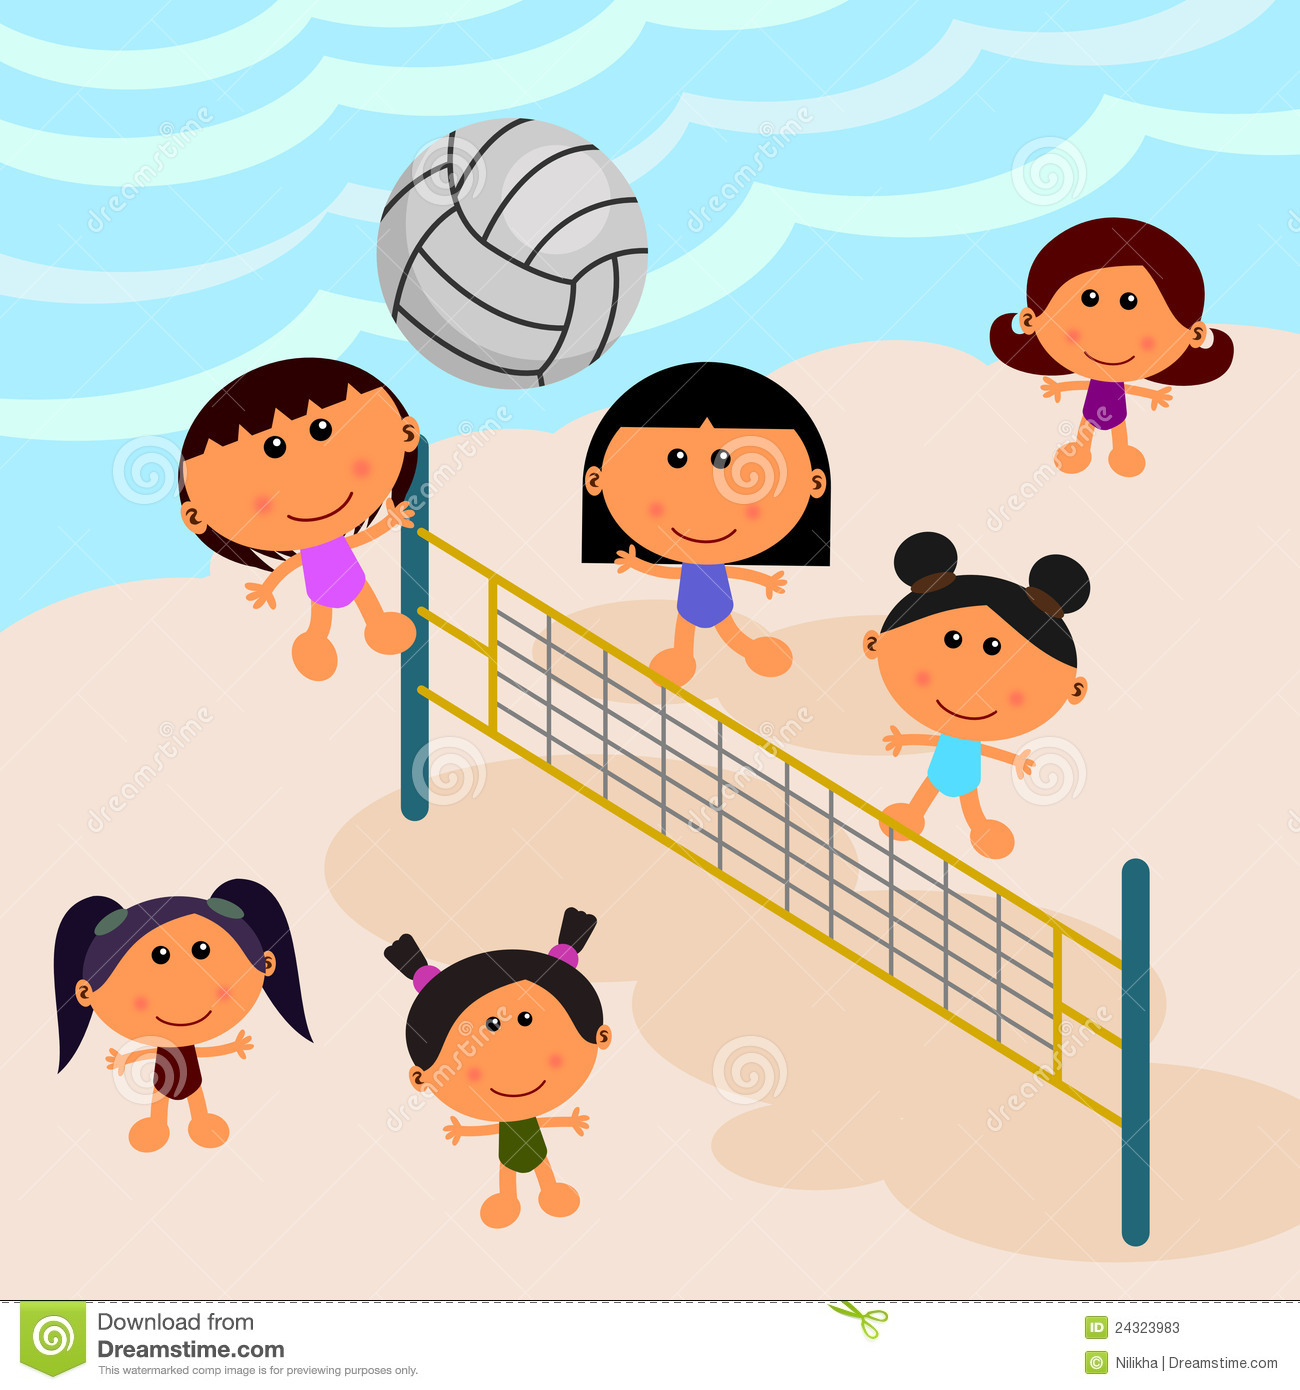 Scene Composed Of A Group Of Cute Cartoon Kids Playing Volleyball